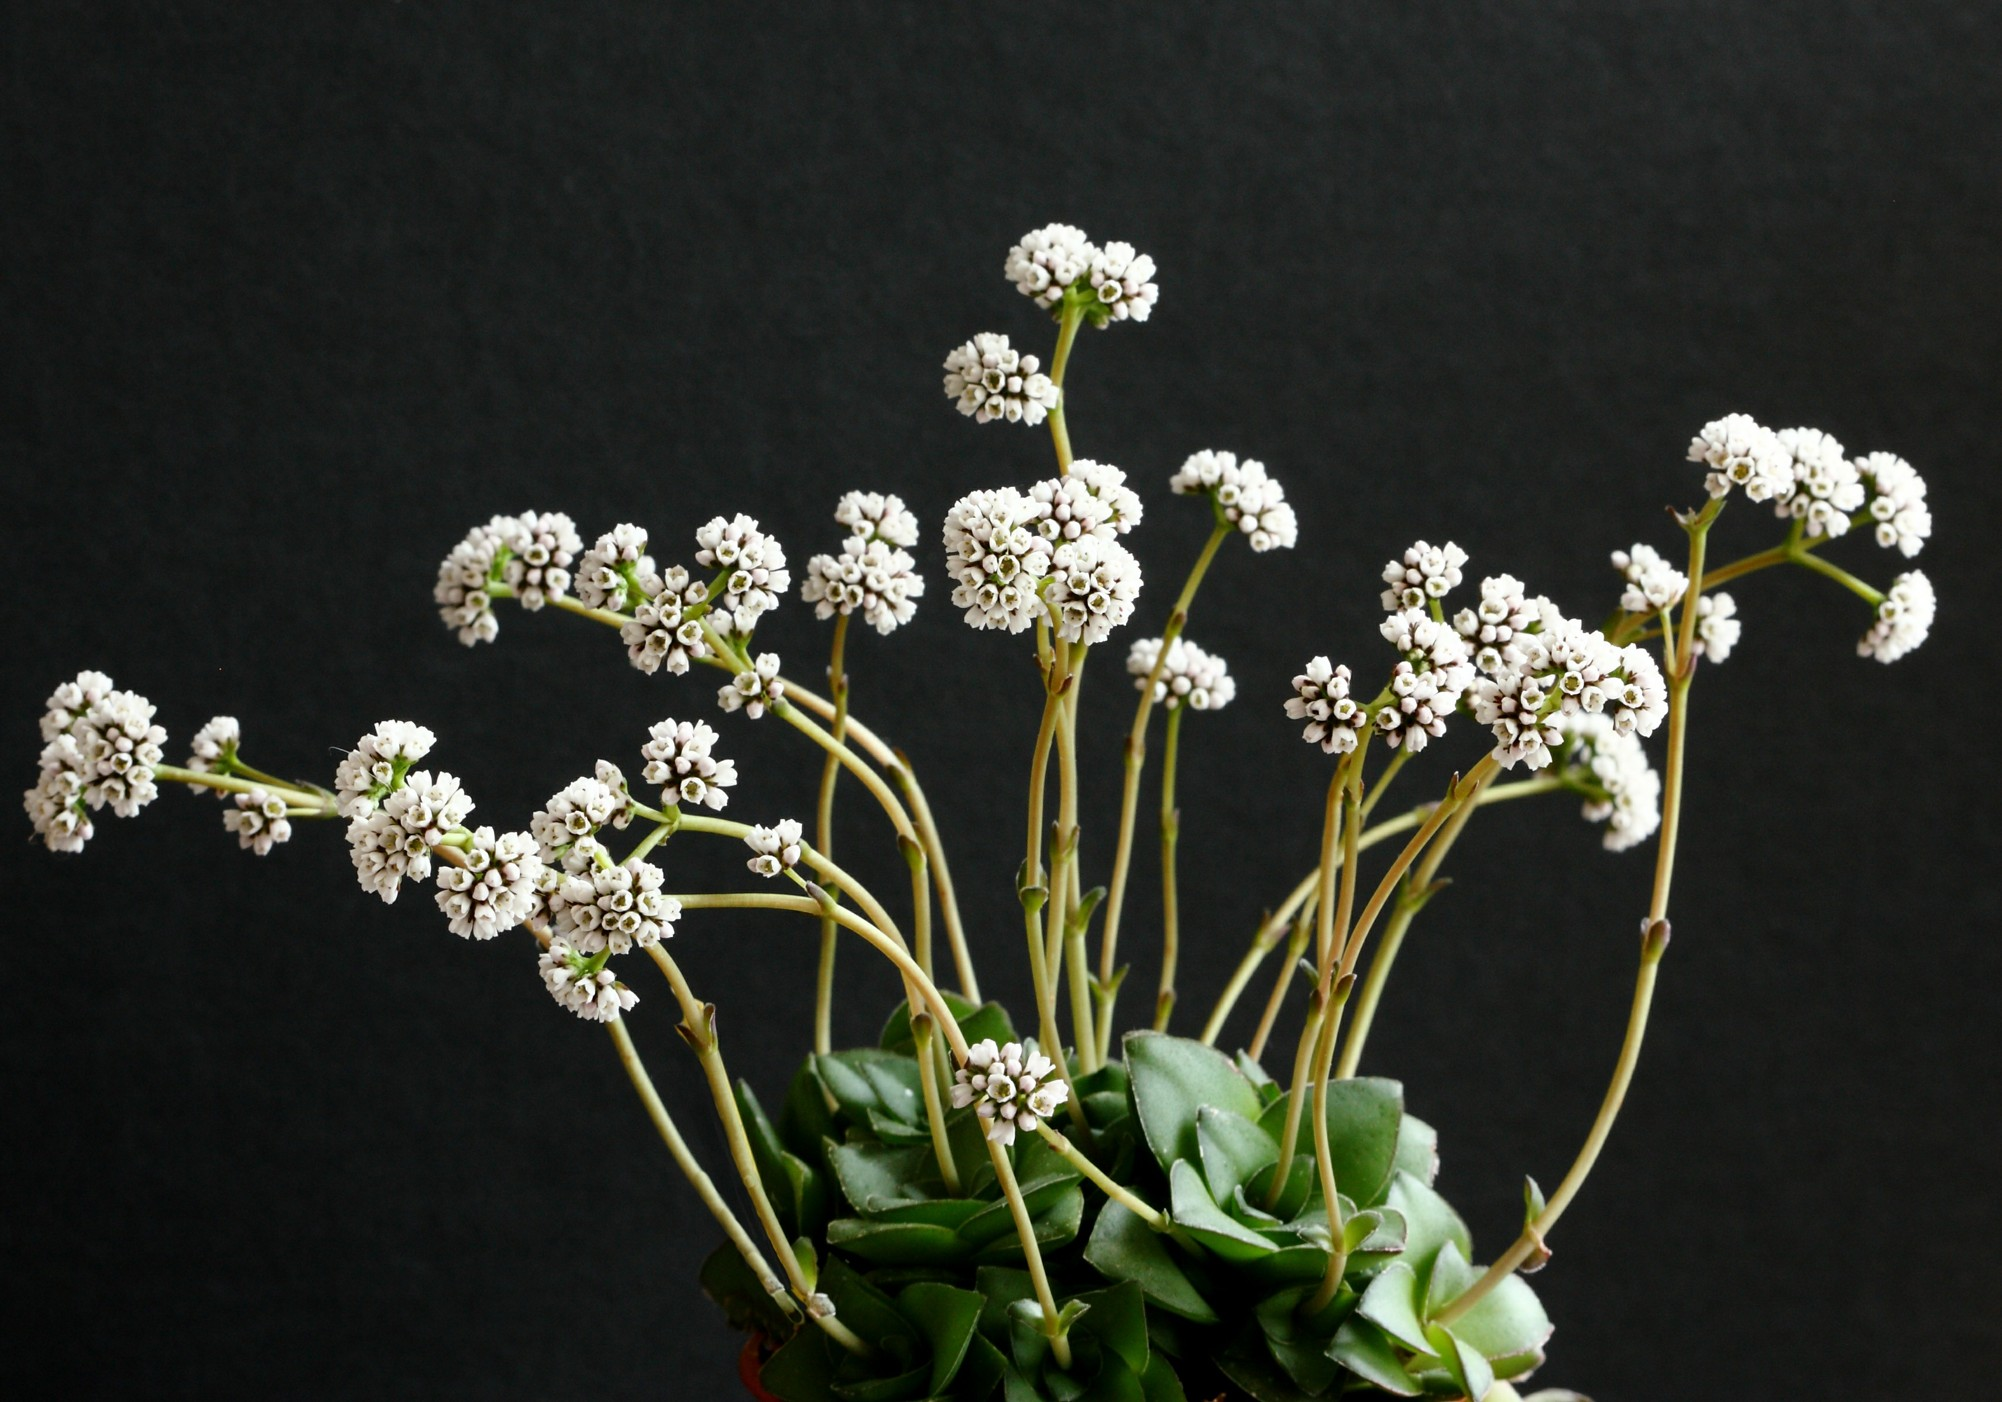 Crassula gillii in flower 29 March 2013.JPG